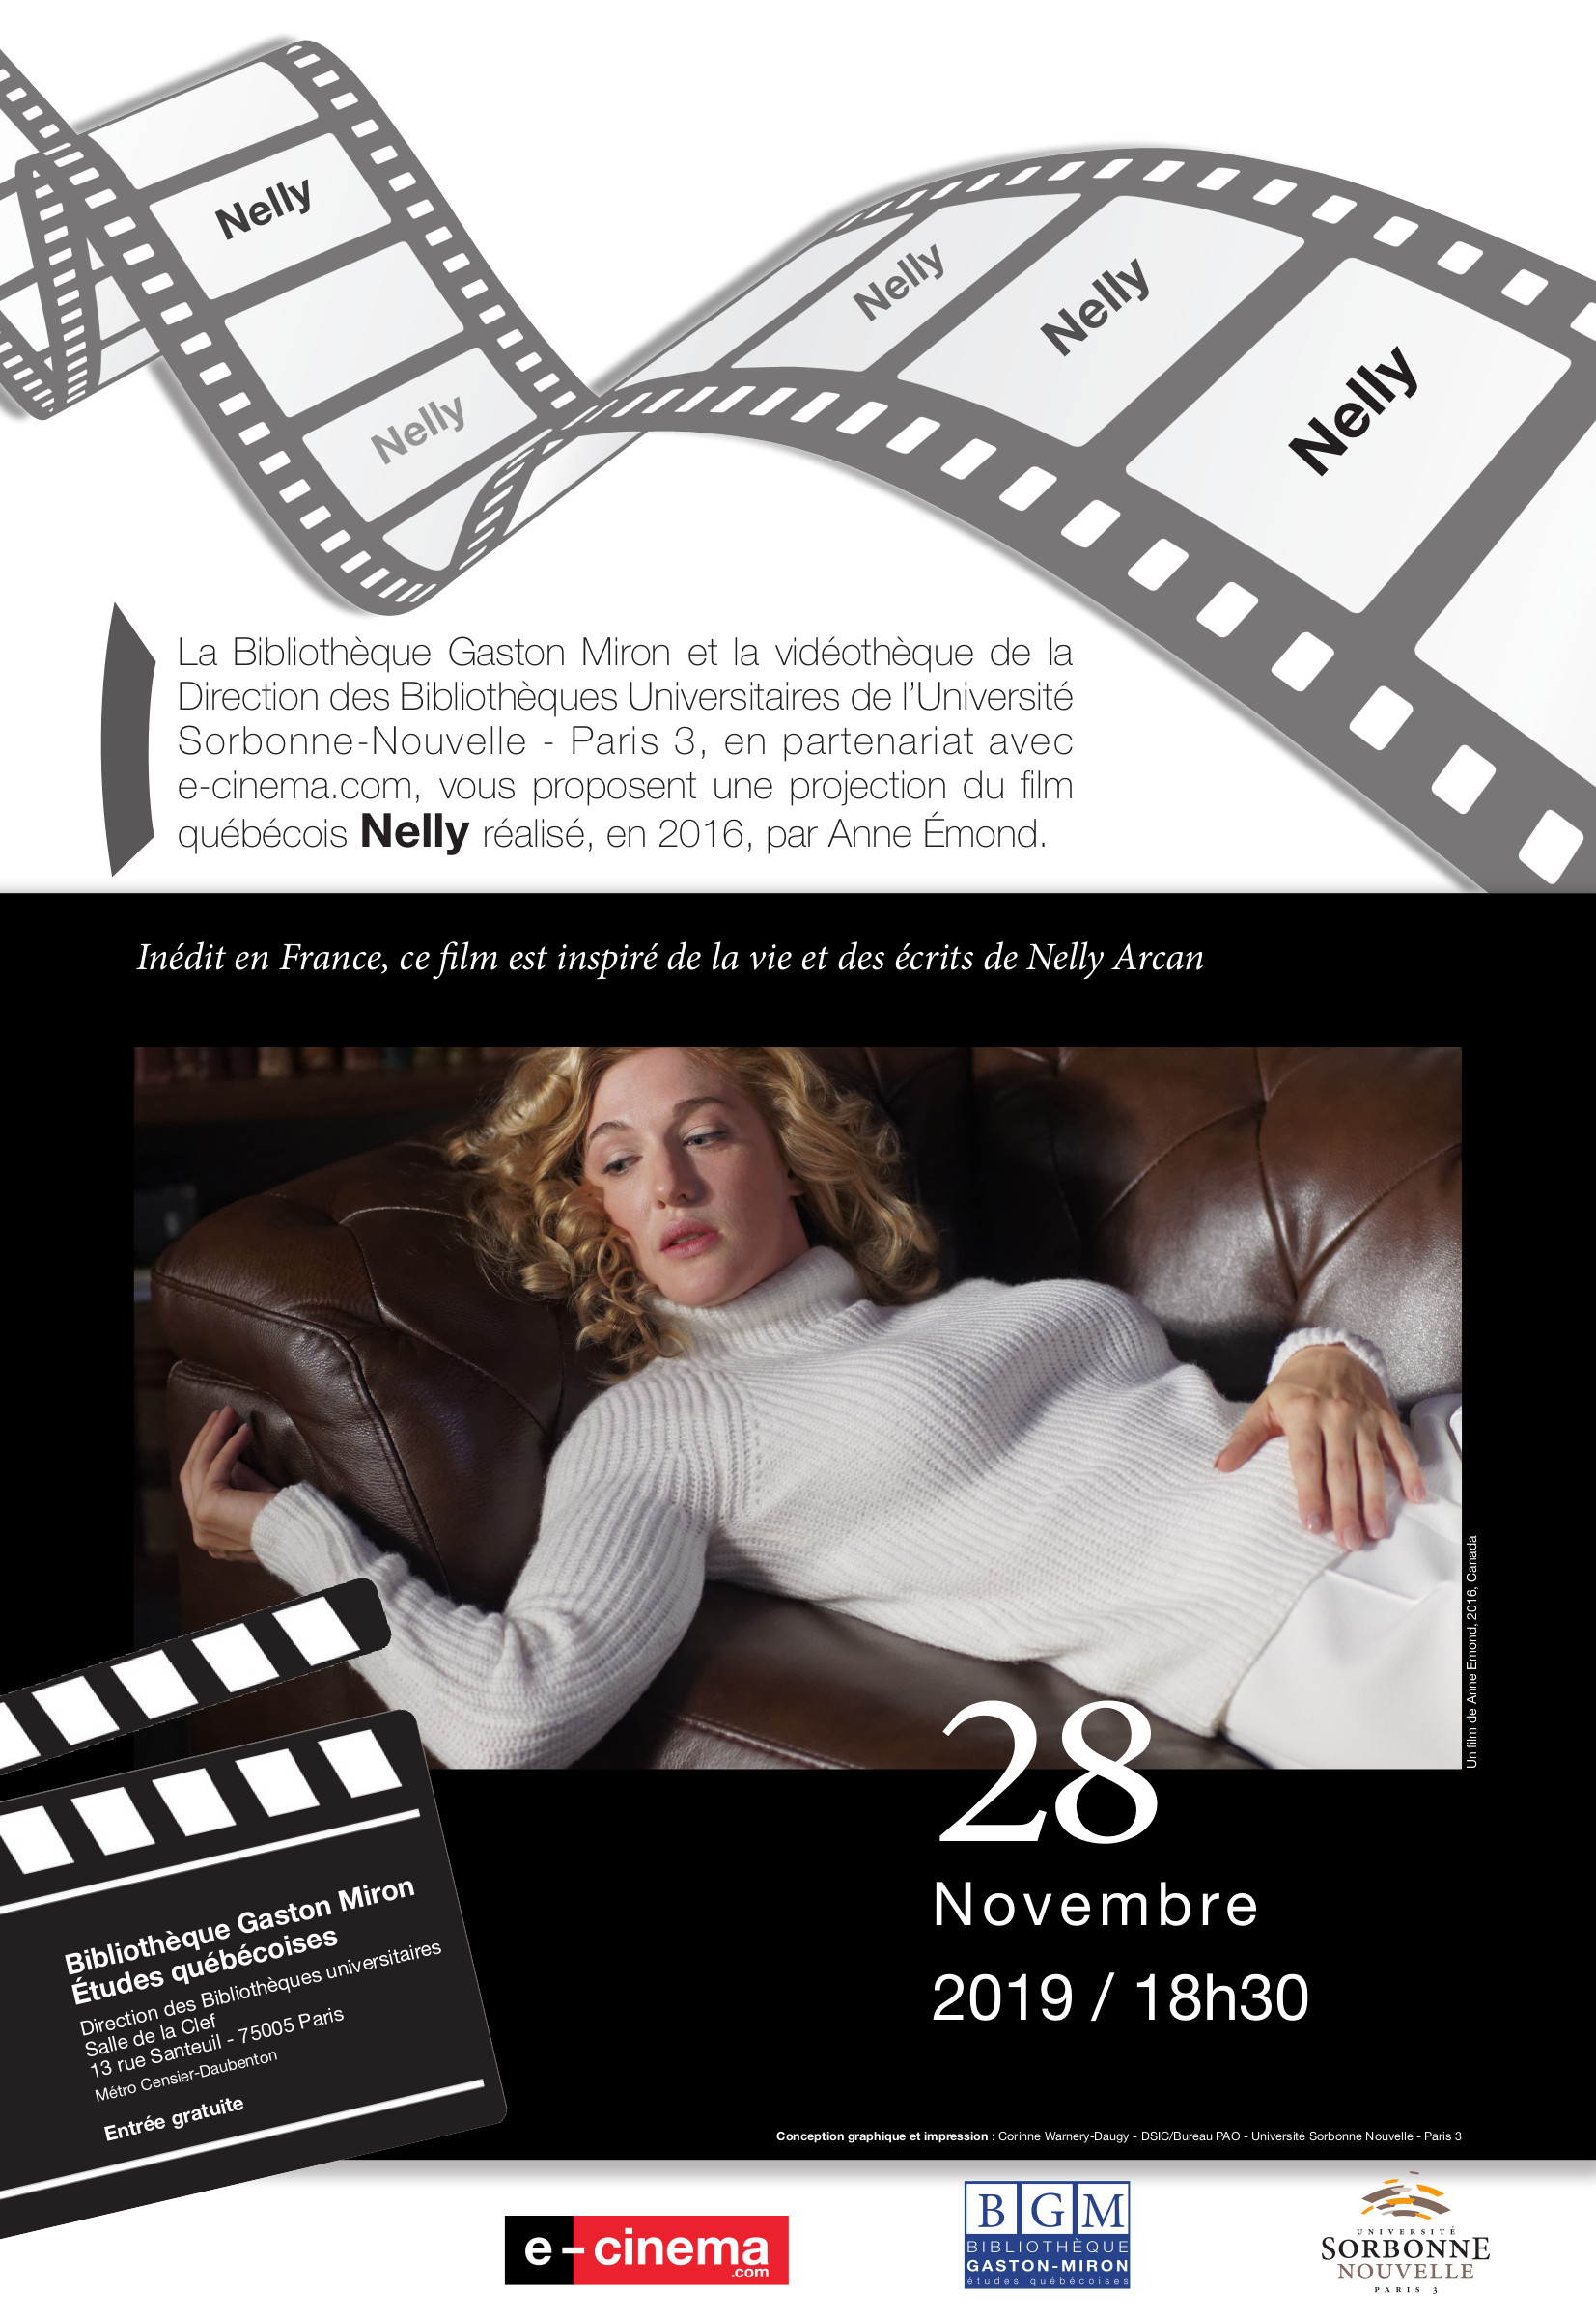 Affiche NELLY projection film 2.jpg